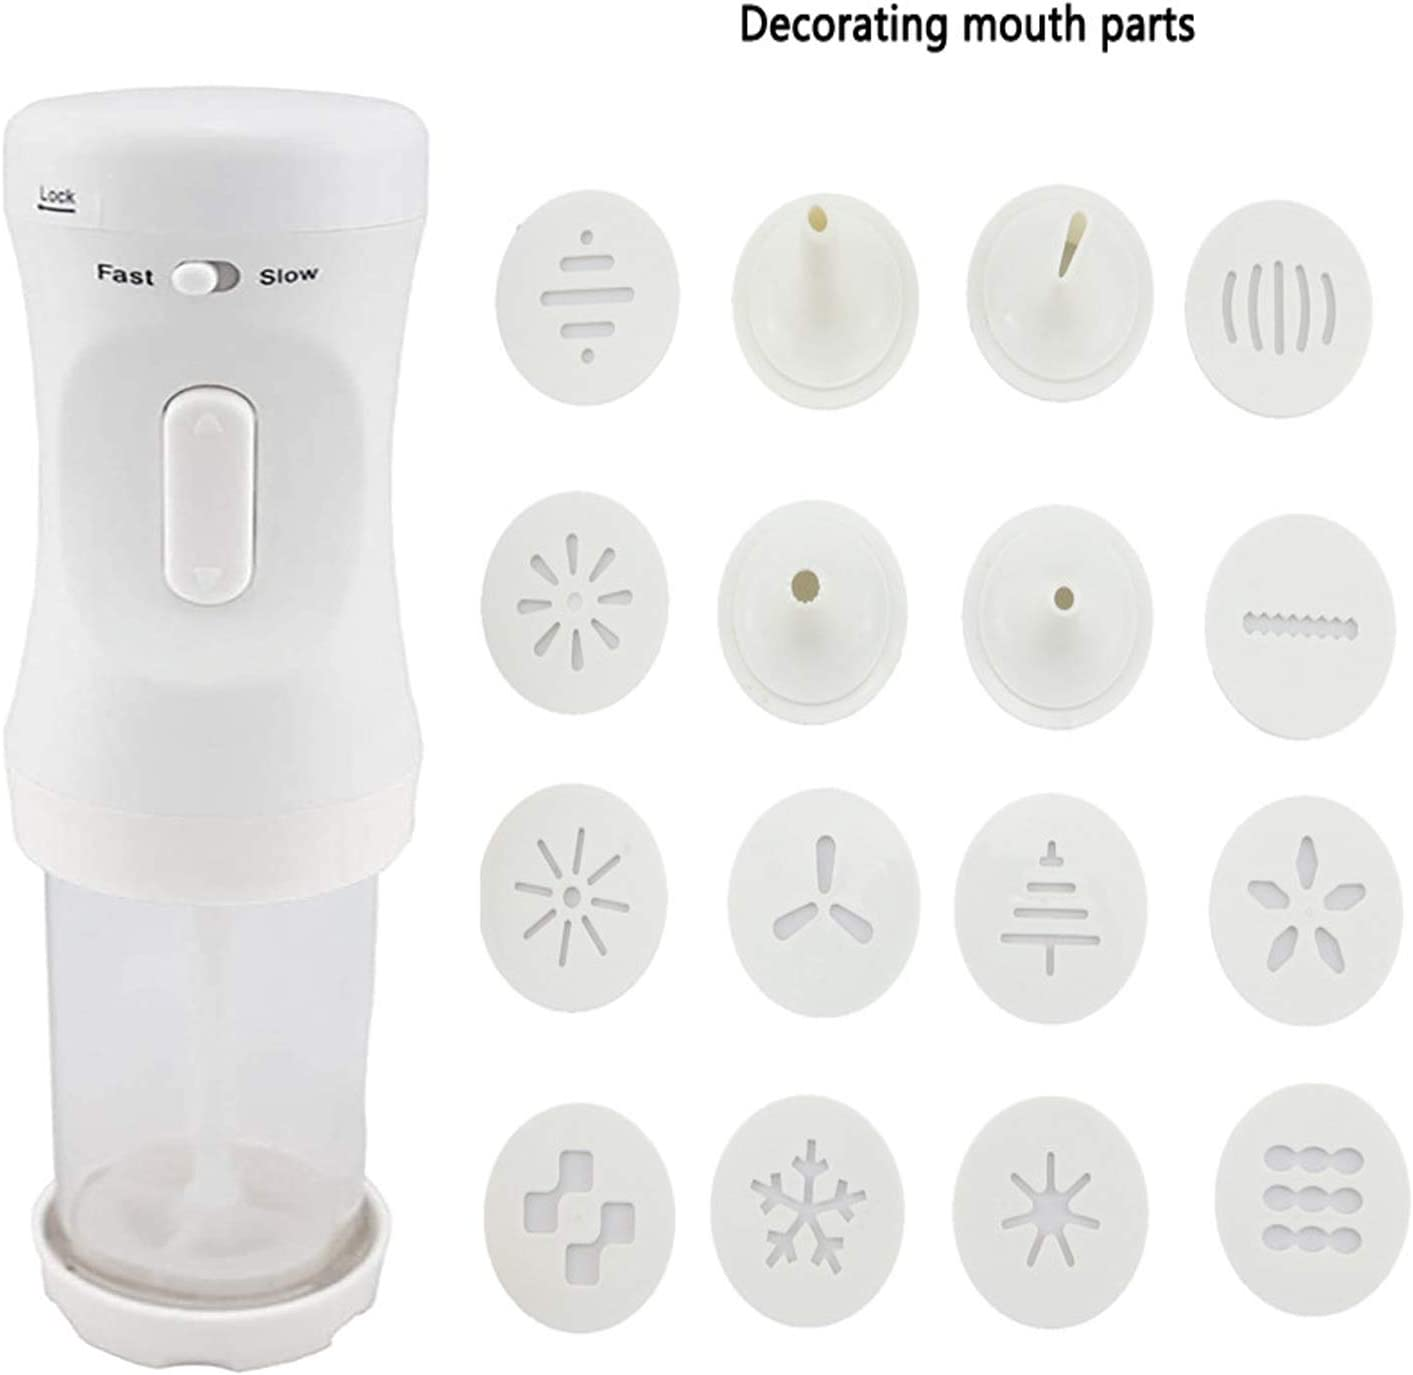 Electric Cookie Press Gun,Electric Wireless Handheld Cookie Maker Kit with 12 Press Stencil Discs And 4 Nozzle Perfect for DIY Cookie Maker and Cake Icing Decoration Tool White